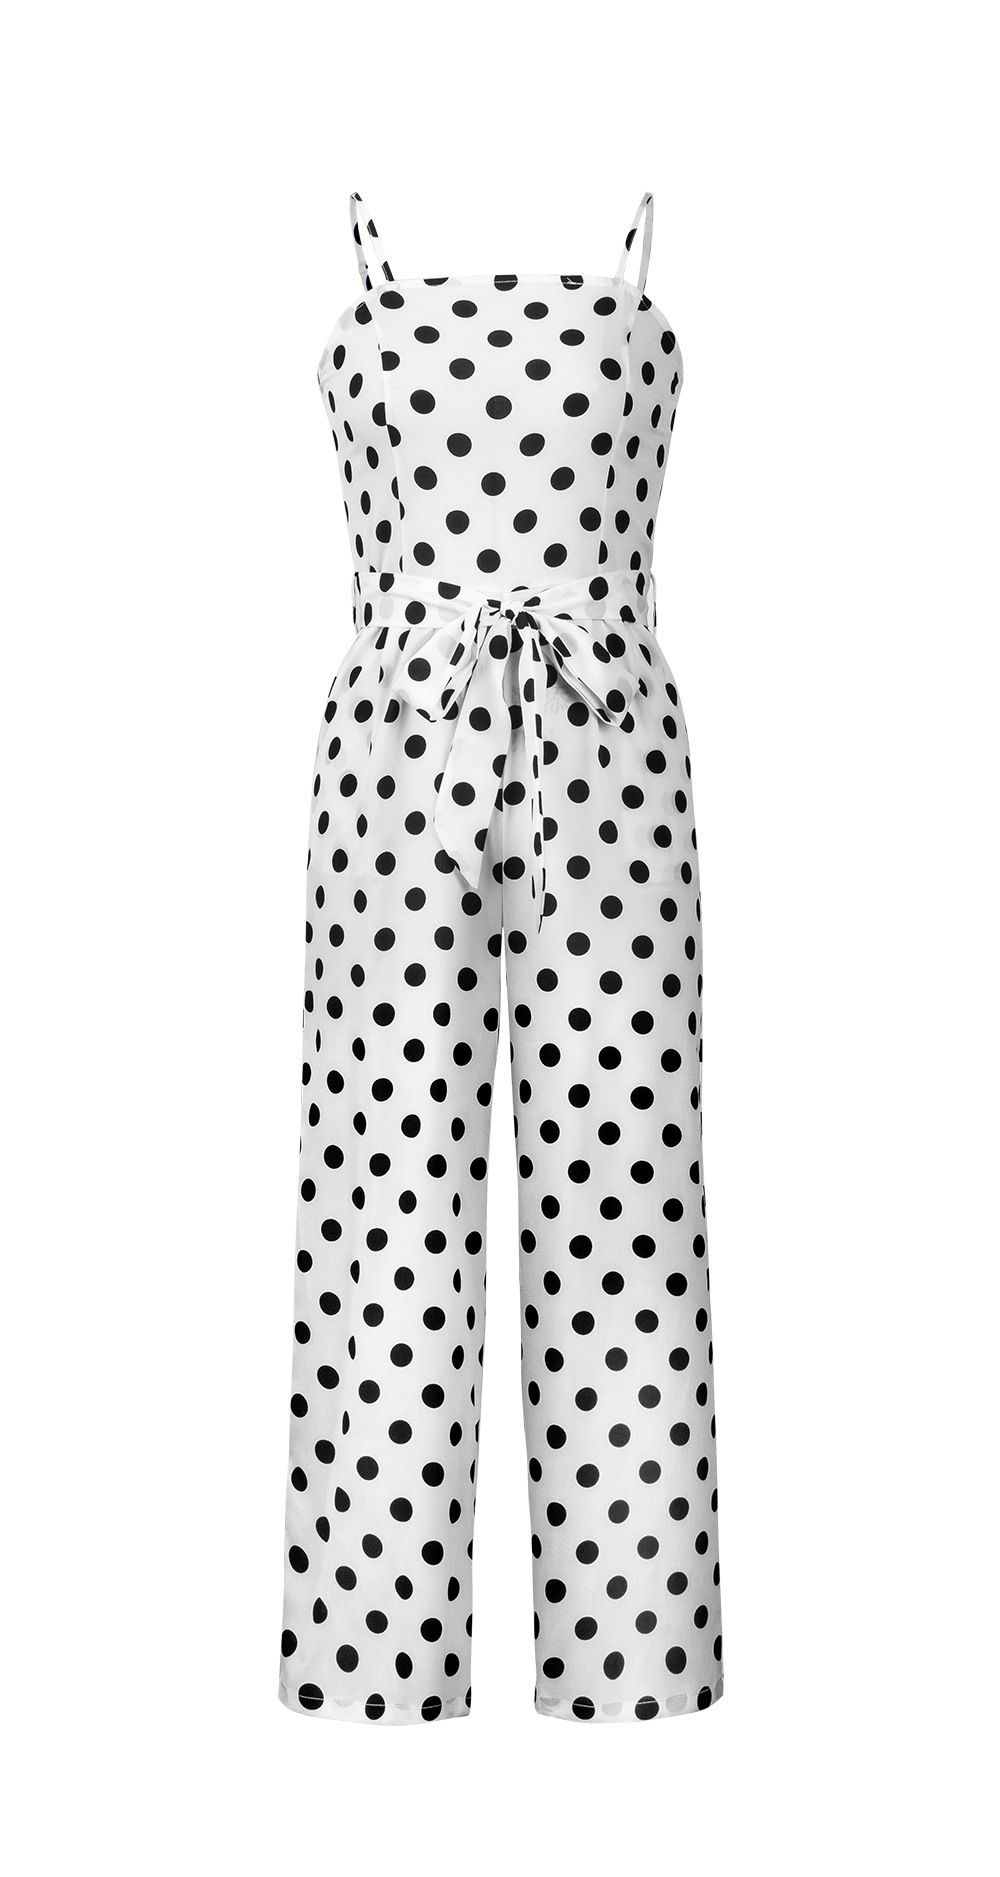 HTB1FDoBbizxK1Rjy1zkq6yHrVXaS - Women Rompers summer long pants elegant strap woman jumpsuits polka dot plus size jumpsuit off shoulder overalls for womens